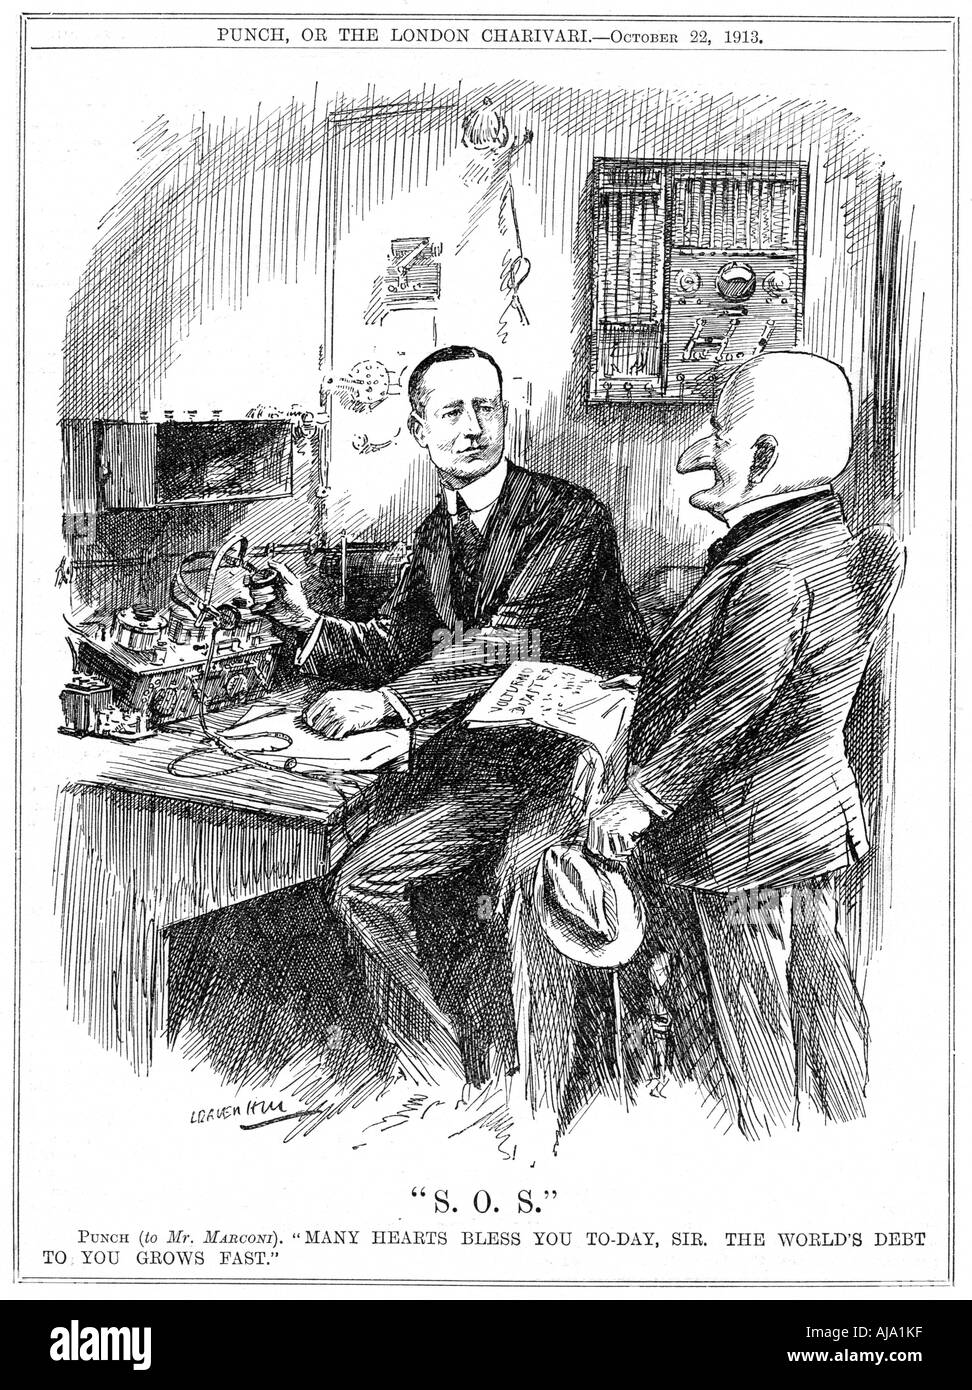 Mr Punch thanking Marconi for wireless telegraphy which was saving lives at sea, 1913. Artist: Leonard Raven-Hill Stock Photo